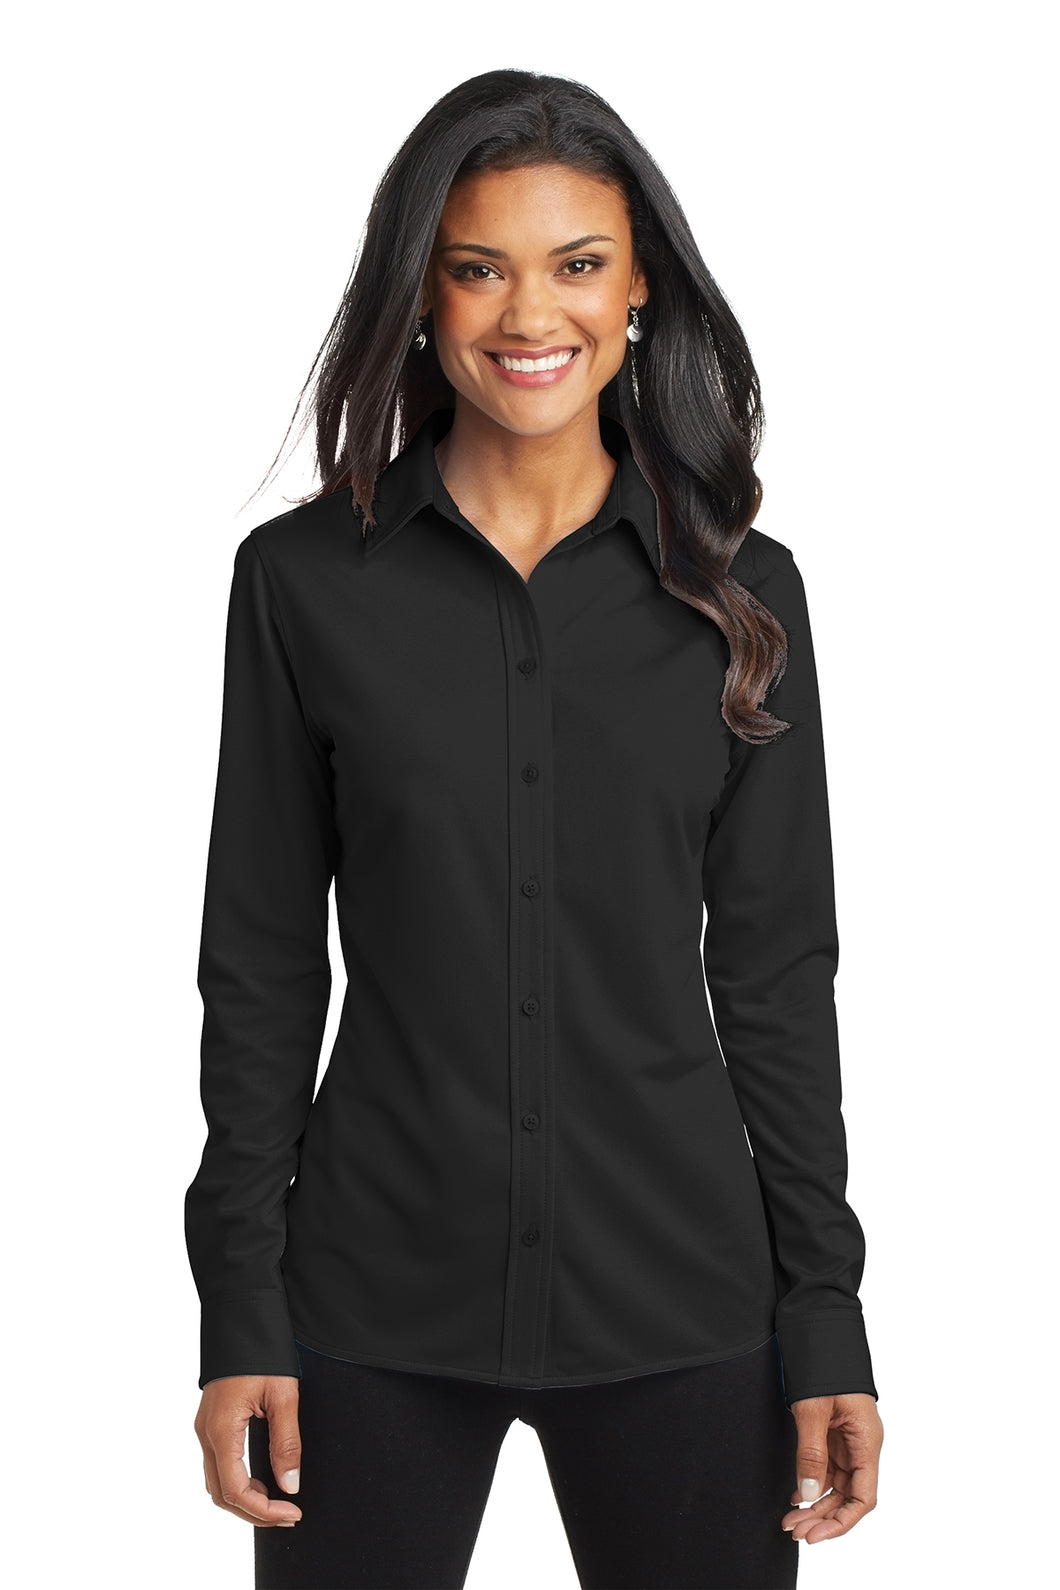 Allied Long-Sleeve Women's Dress Shirt